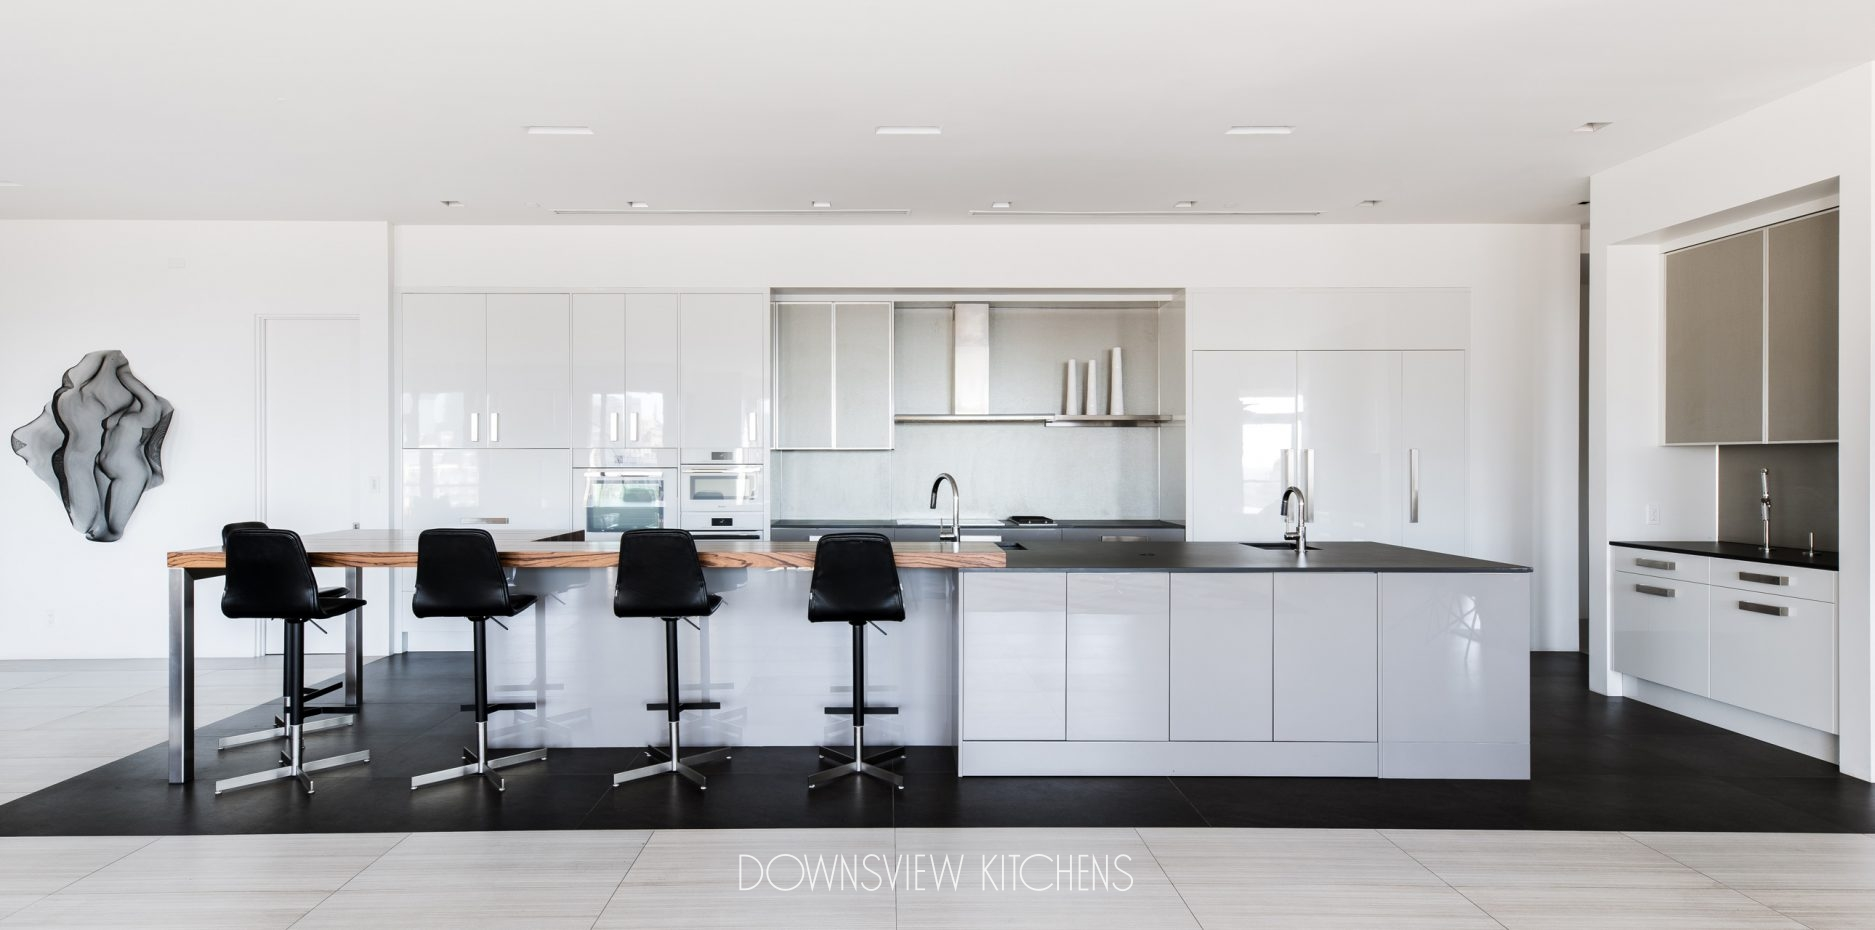 FORM U0026 FUNCTION   Downsview Kitchens And Fine Custom Cabinetry |  Manufacturers Of Custom Kitchen Cabinets